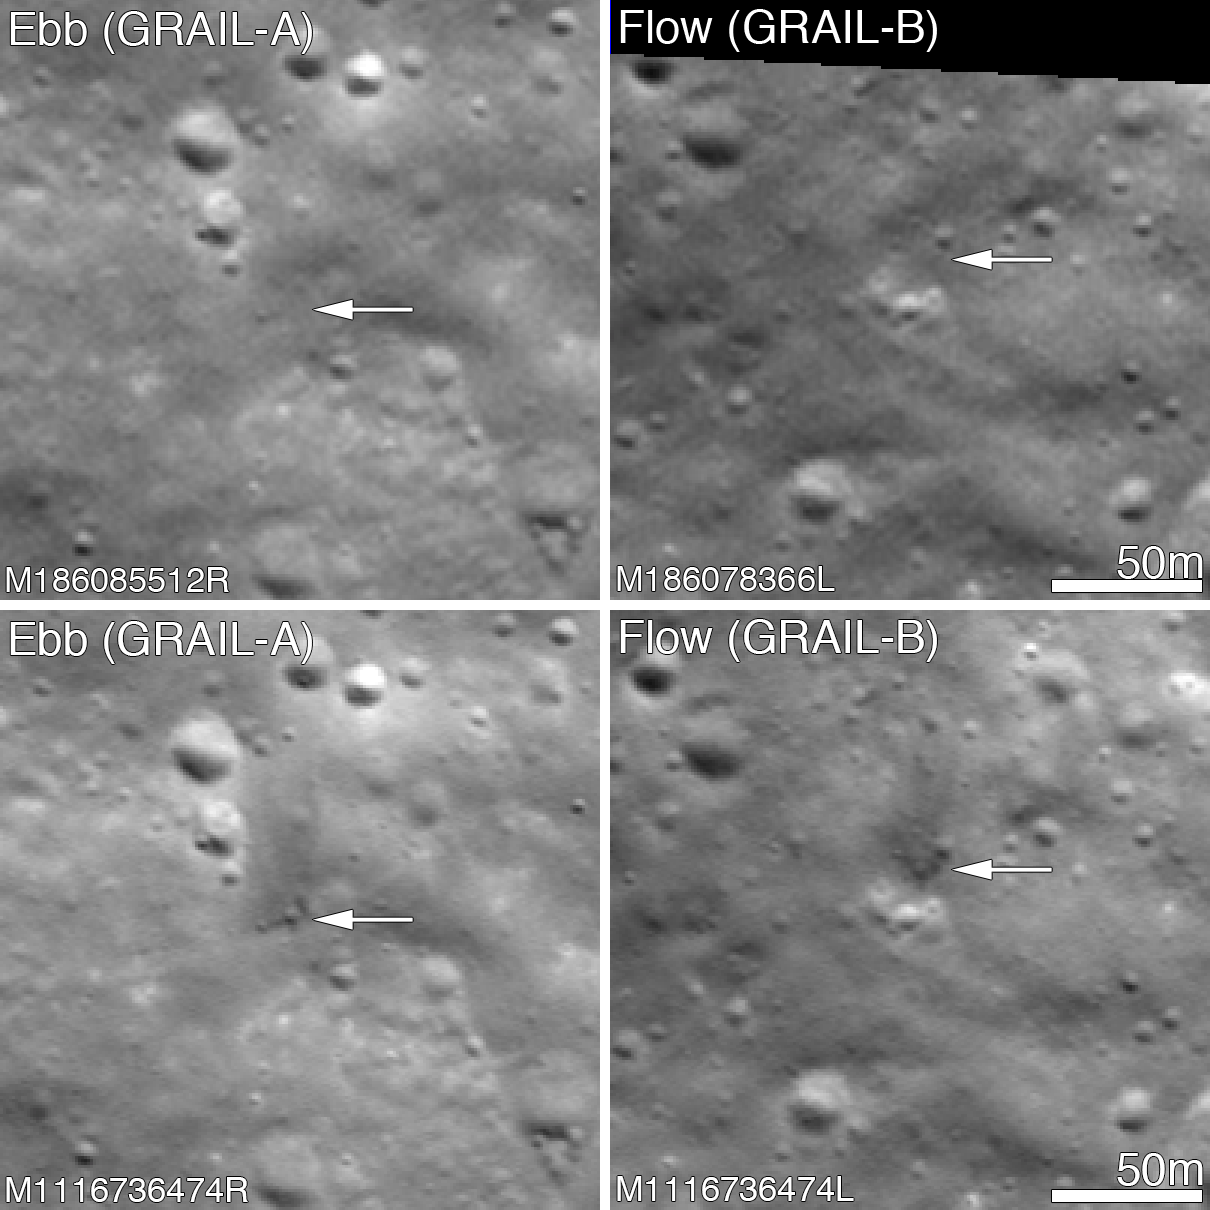 Collection of images showing impact marks of two spacecraft that impacted the moon.